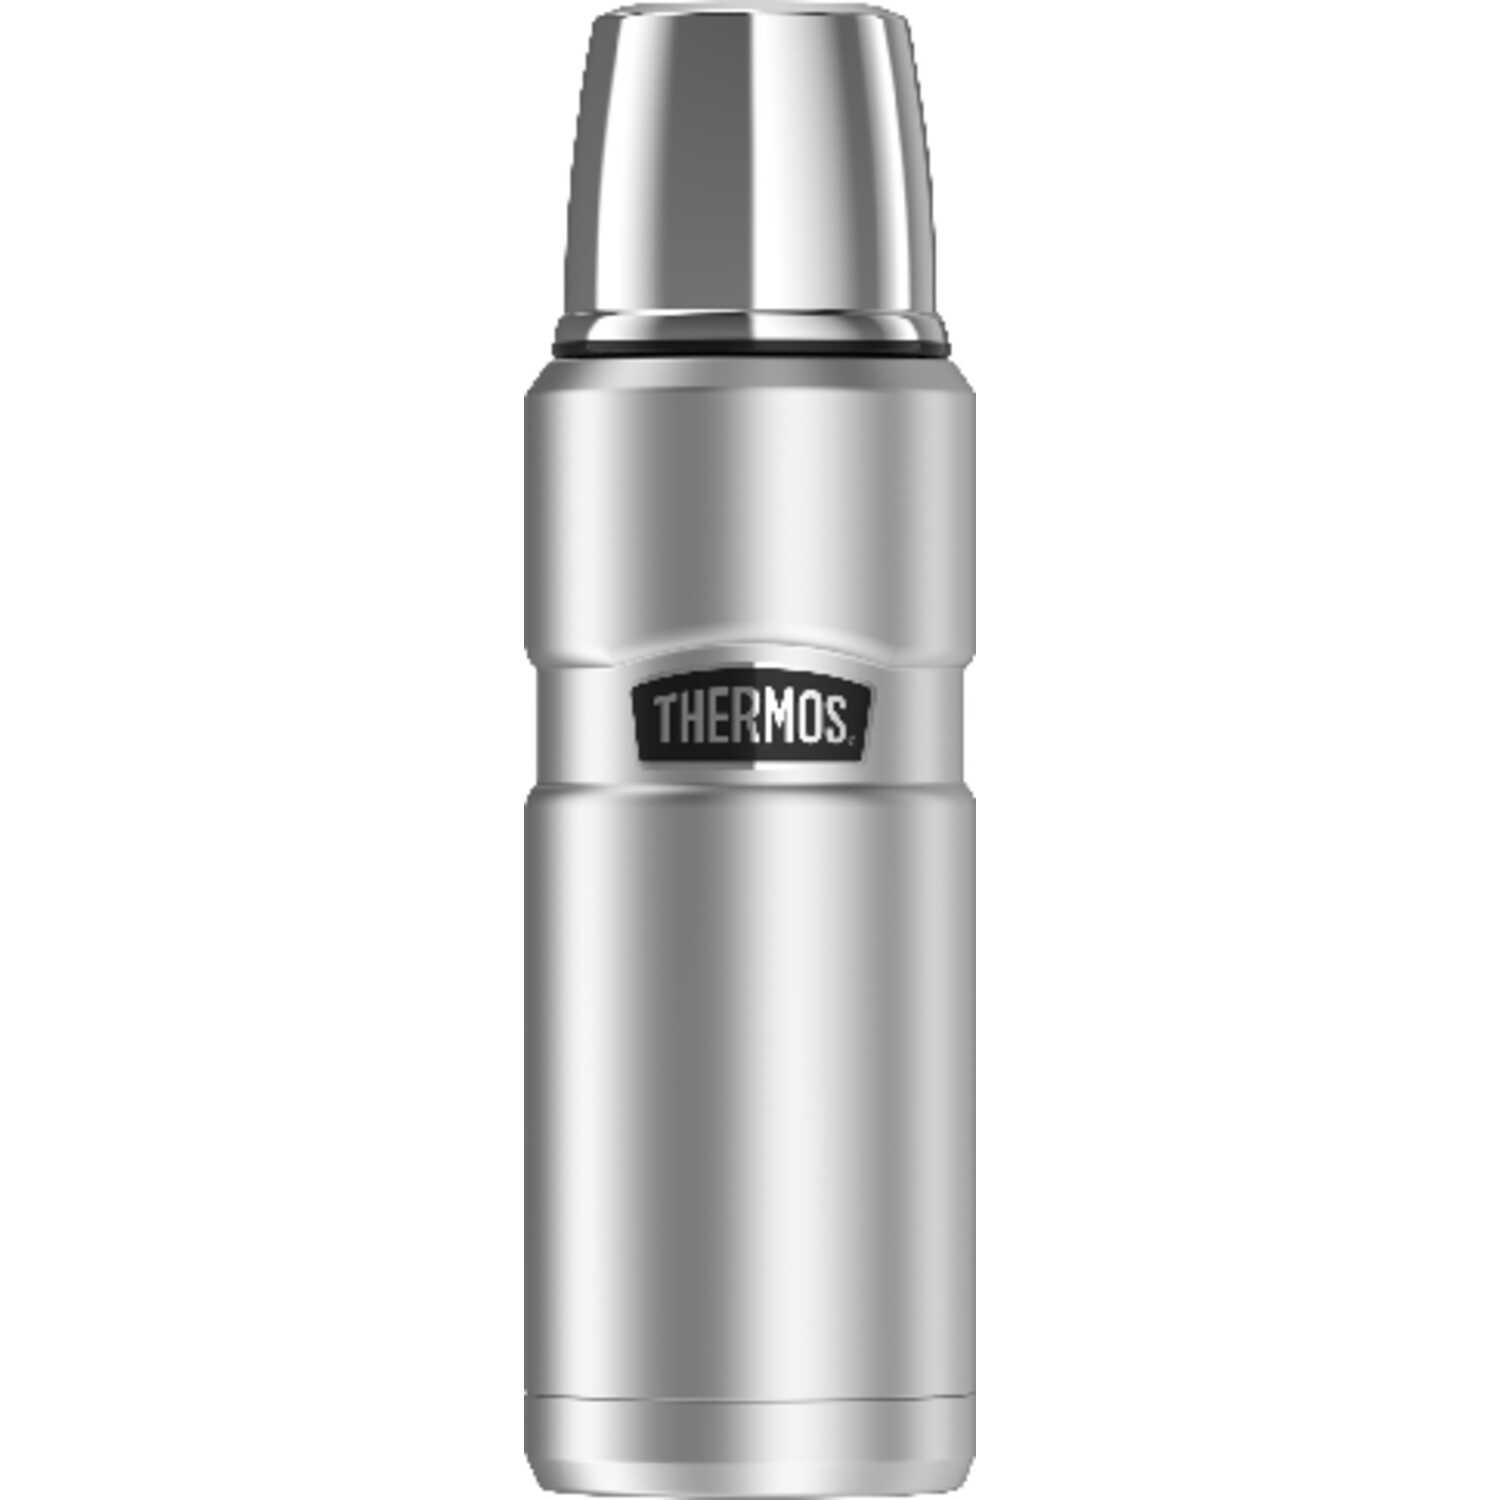 Thermos  Stainless  Stainless Steel  Vacuum Insulated  Beverage Bottle  BPA Free 16 oz.